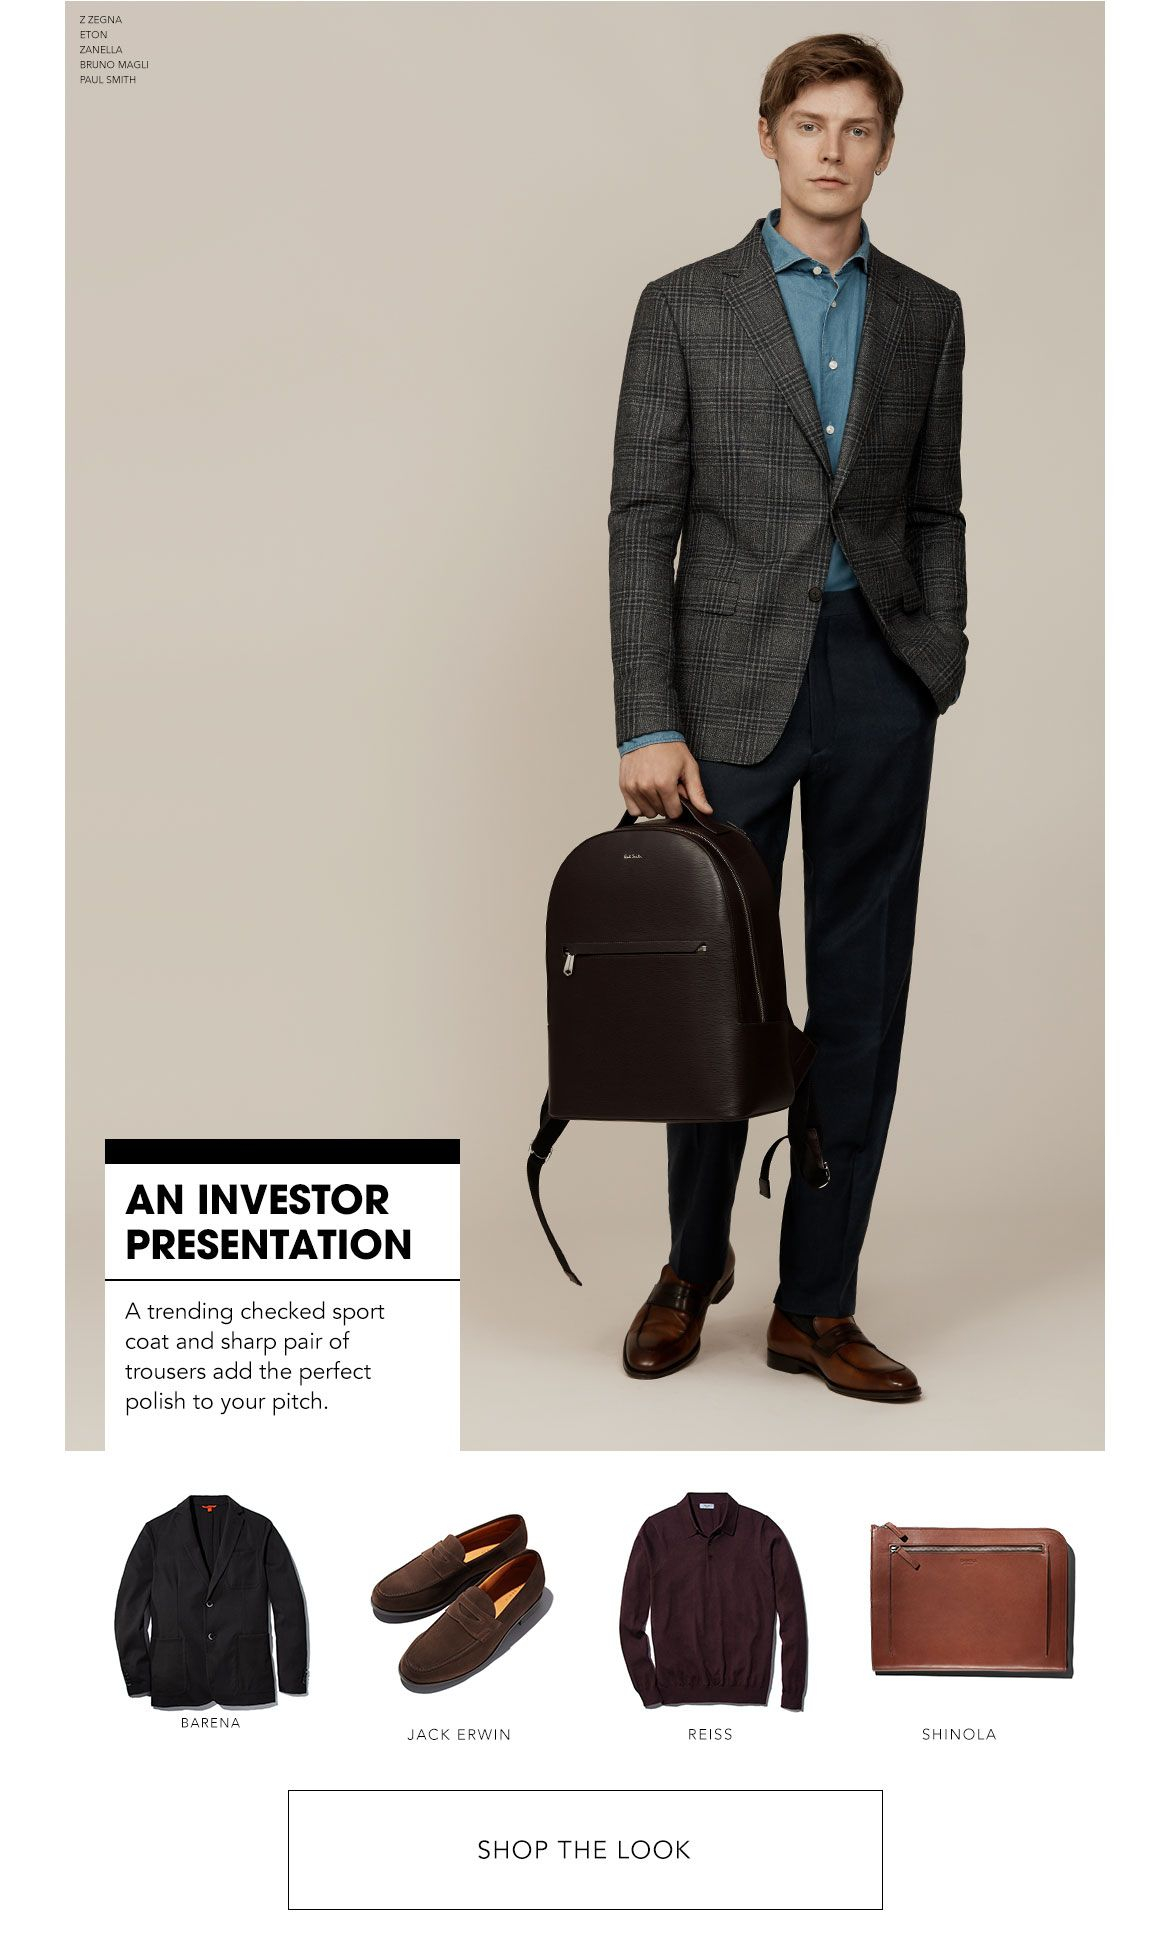 Styled for an Investor Presentation